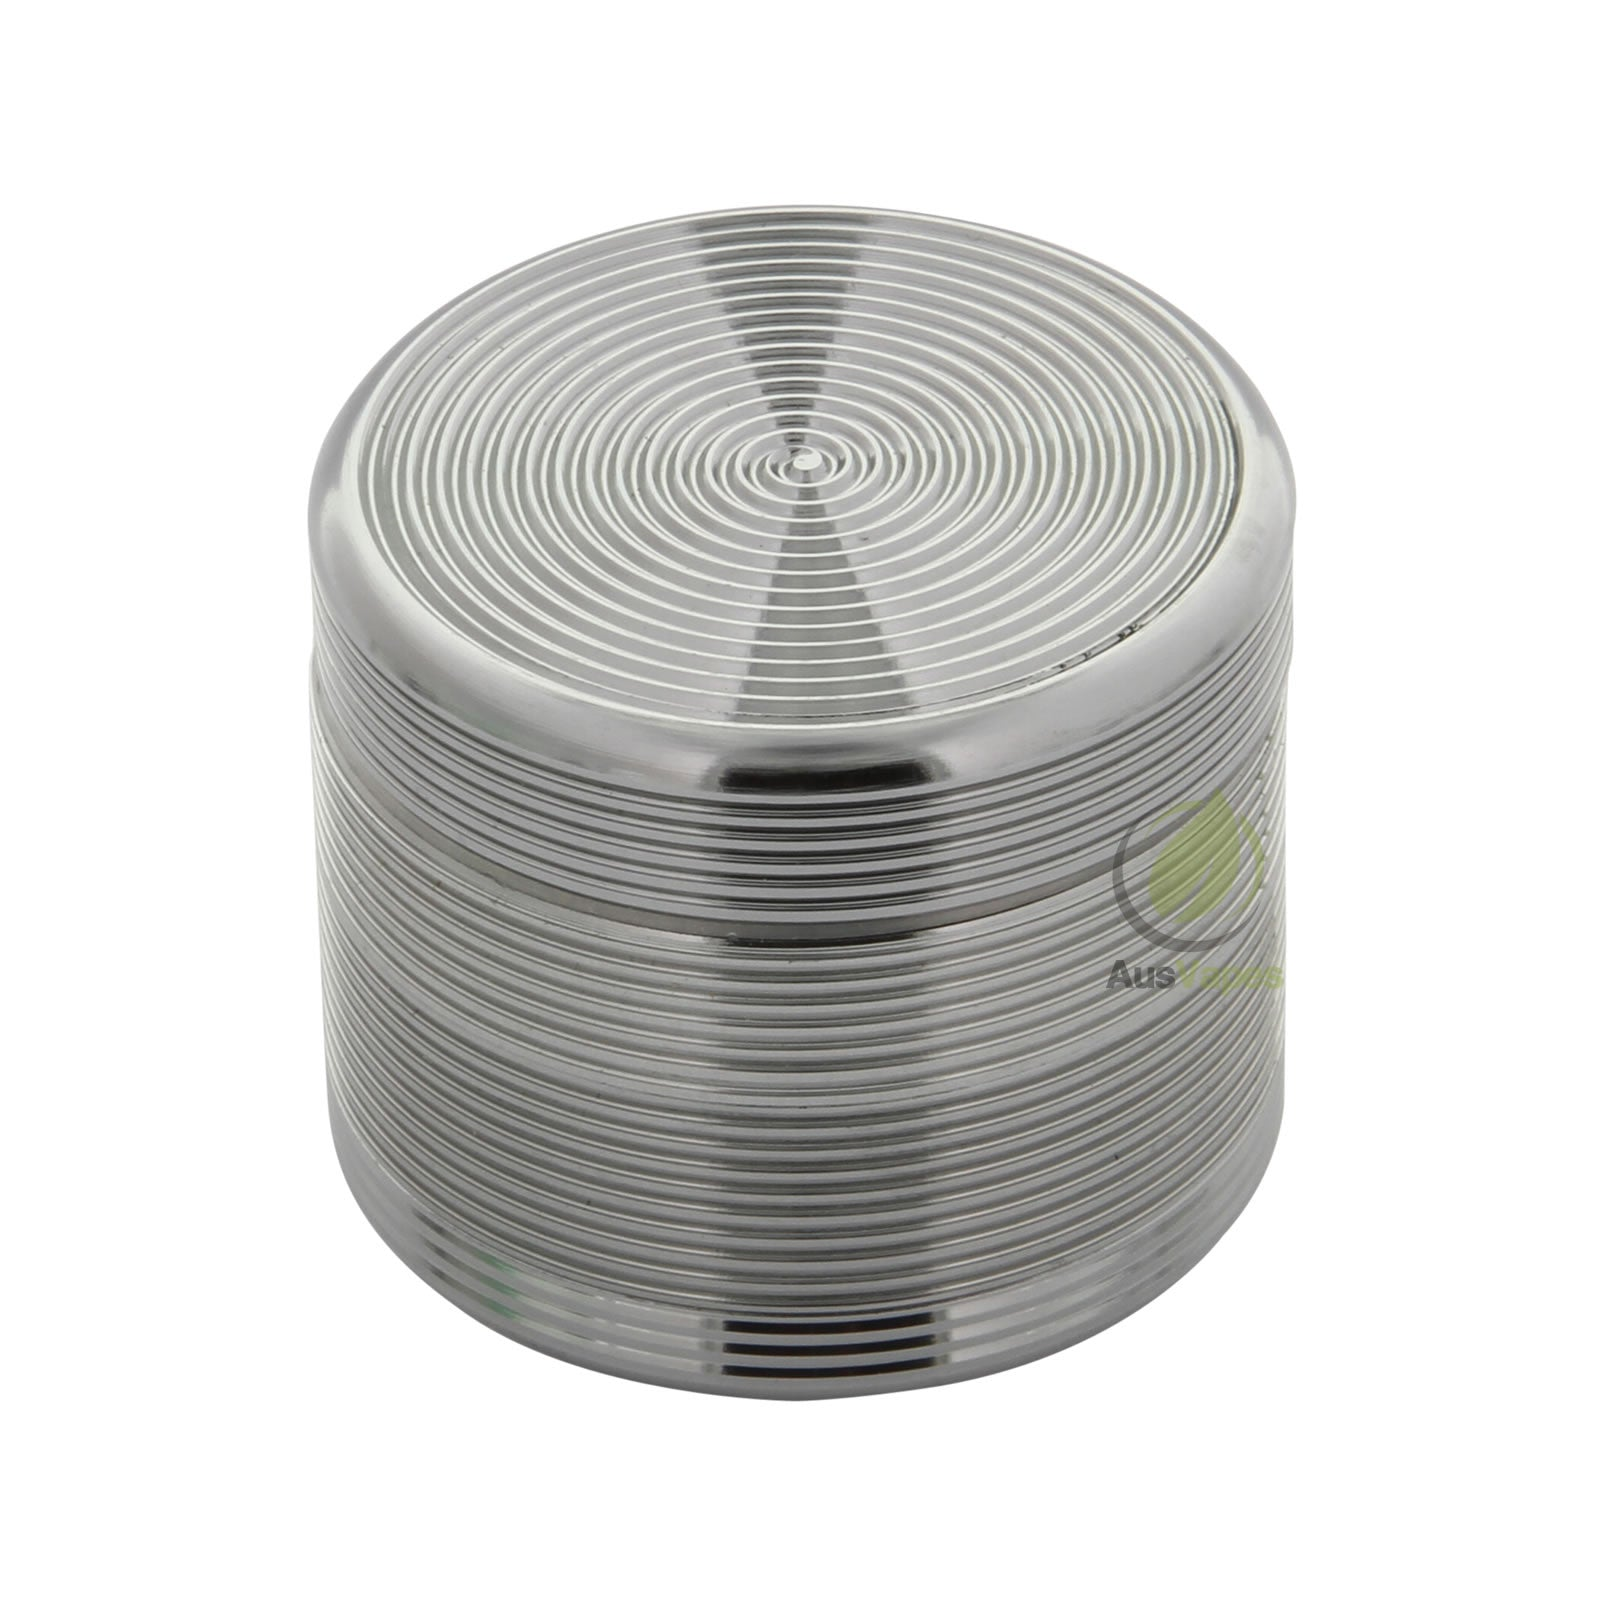 Grey Ripple Aluminium Grinder 40mm - 4 pc.